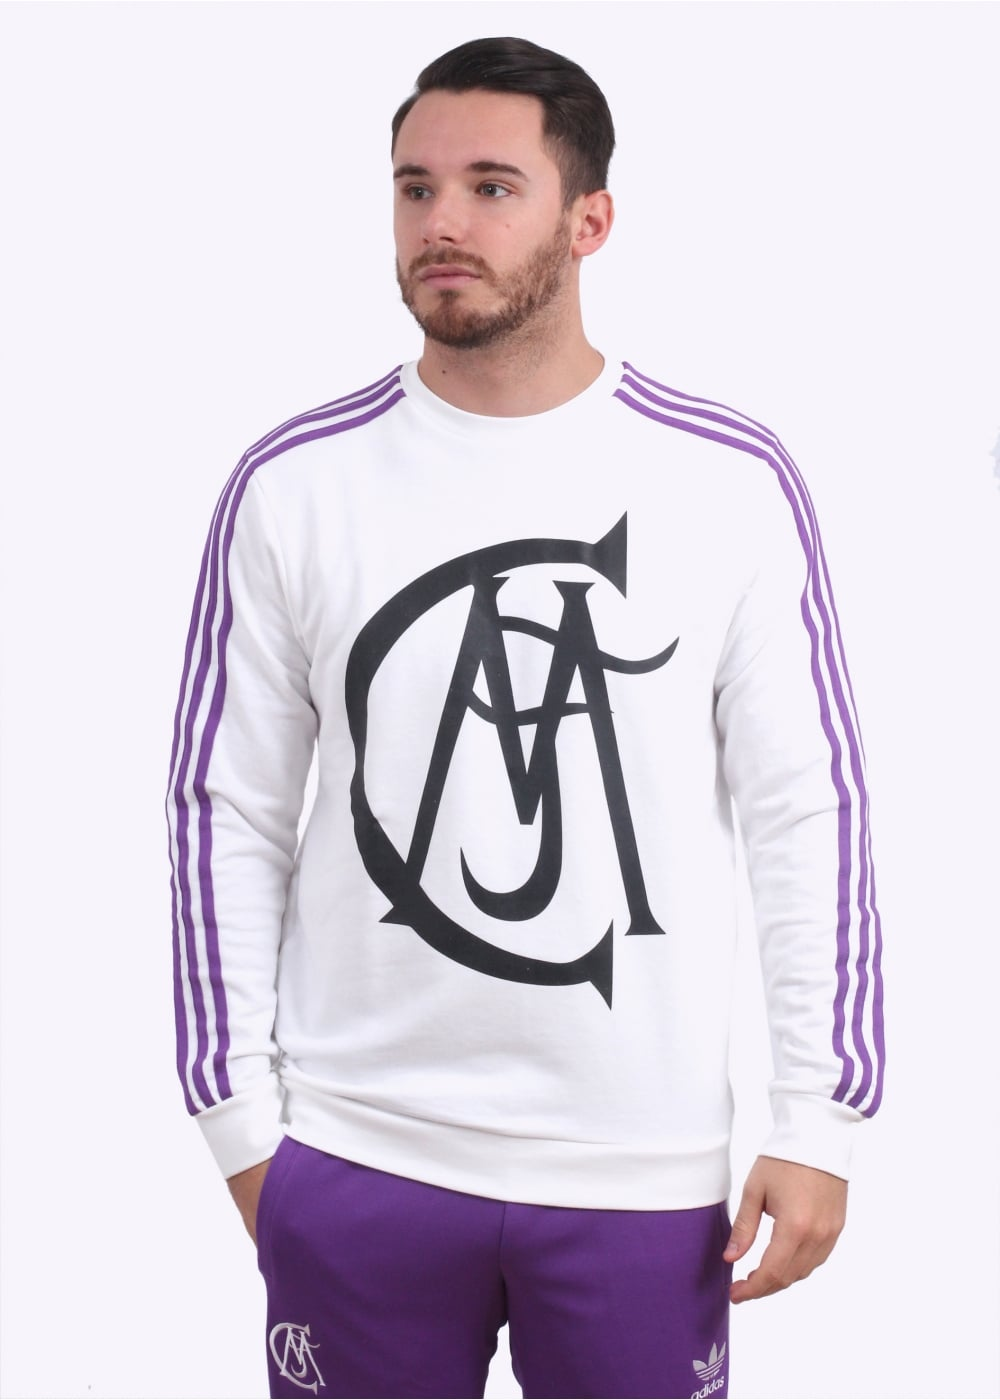 a6b4fd743 adidas Originals Apparel Real Madrid Crew Sweater - Black   Purple ...